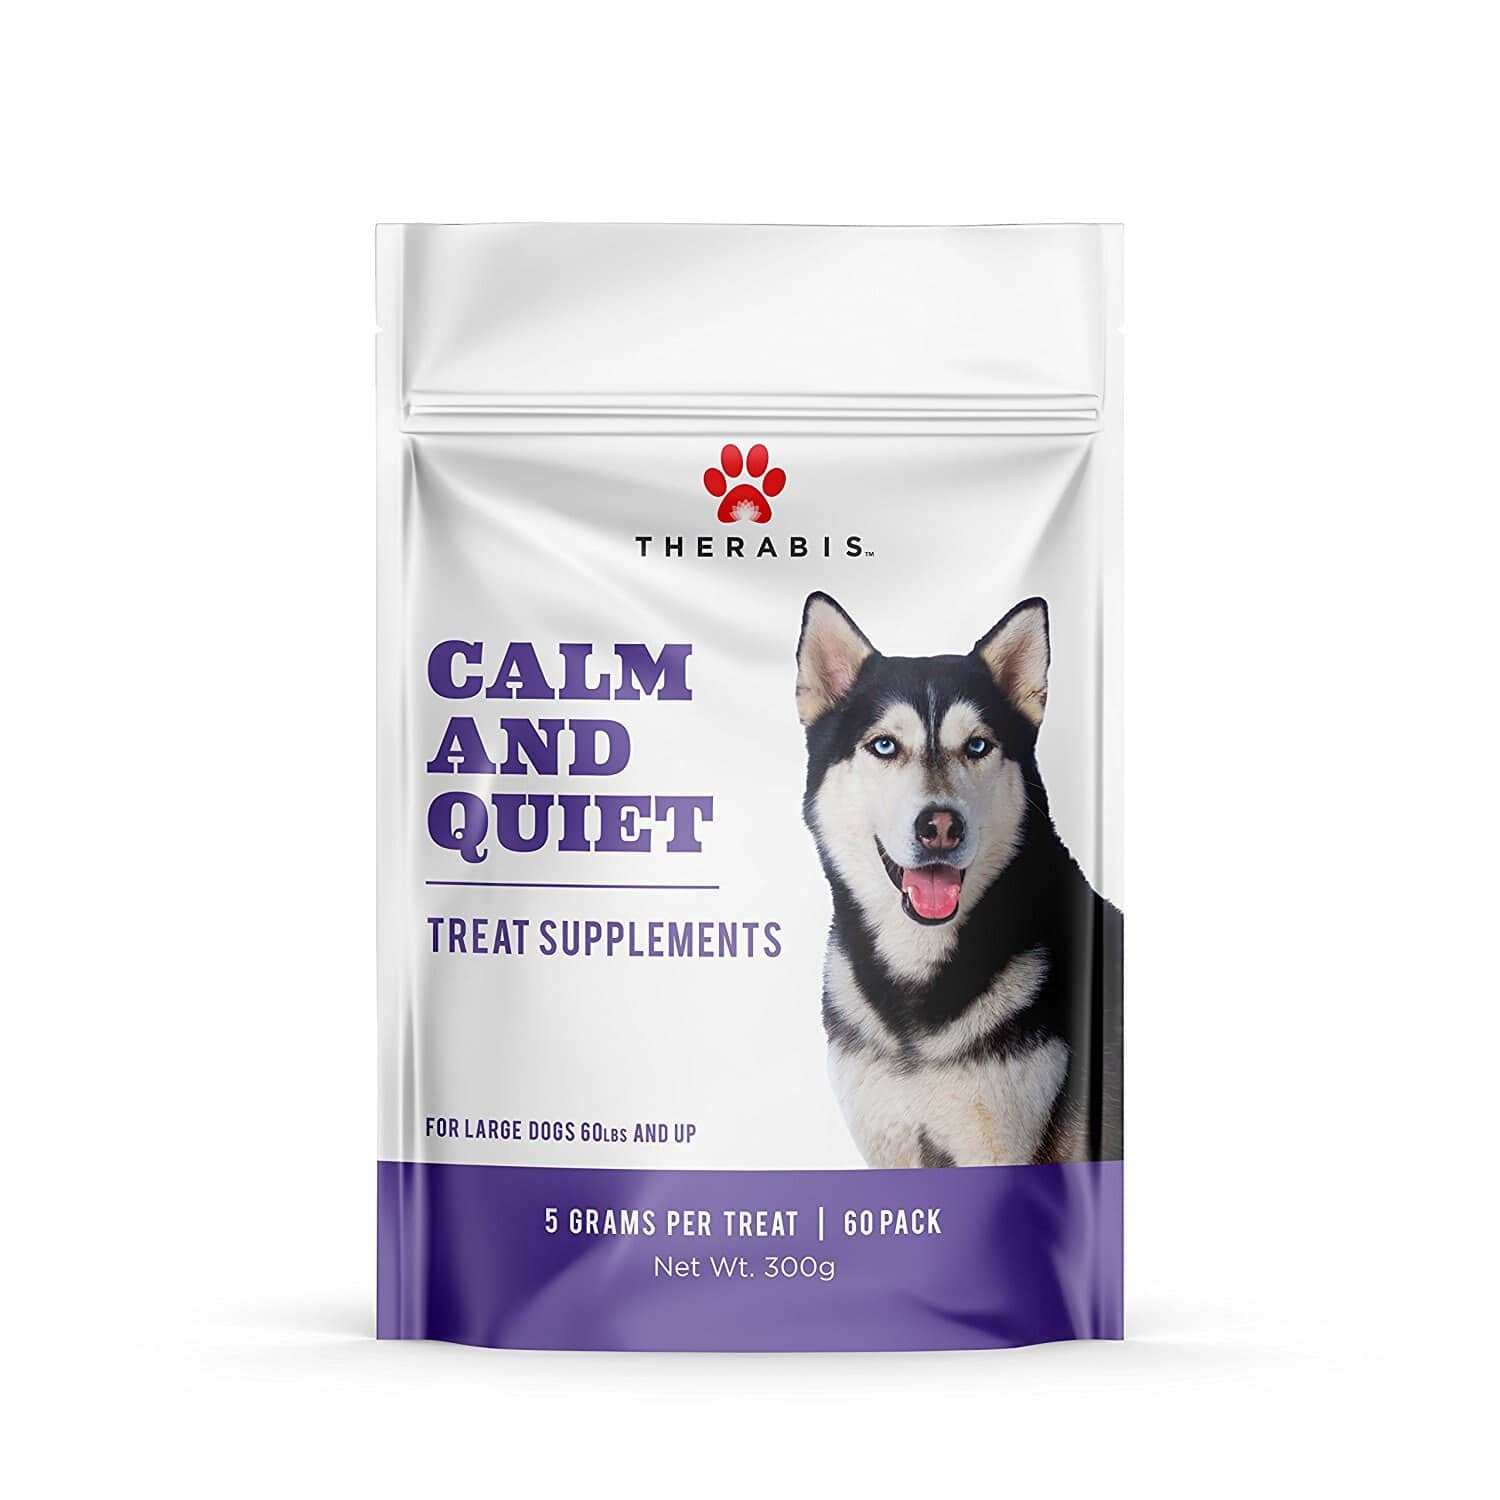 Therabis Calm and Quiet Treats for Large Dogs - Calming and Stress Relief : $43.99 AC + FS